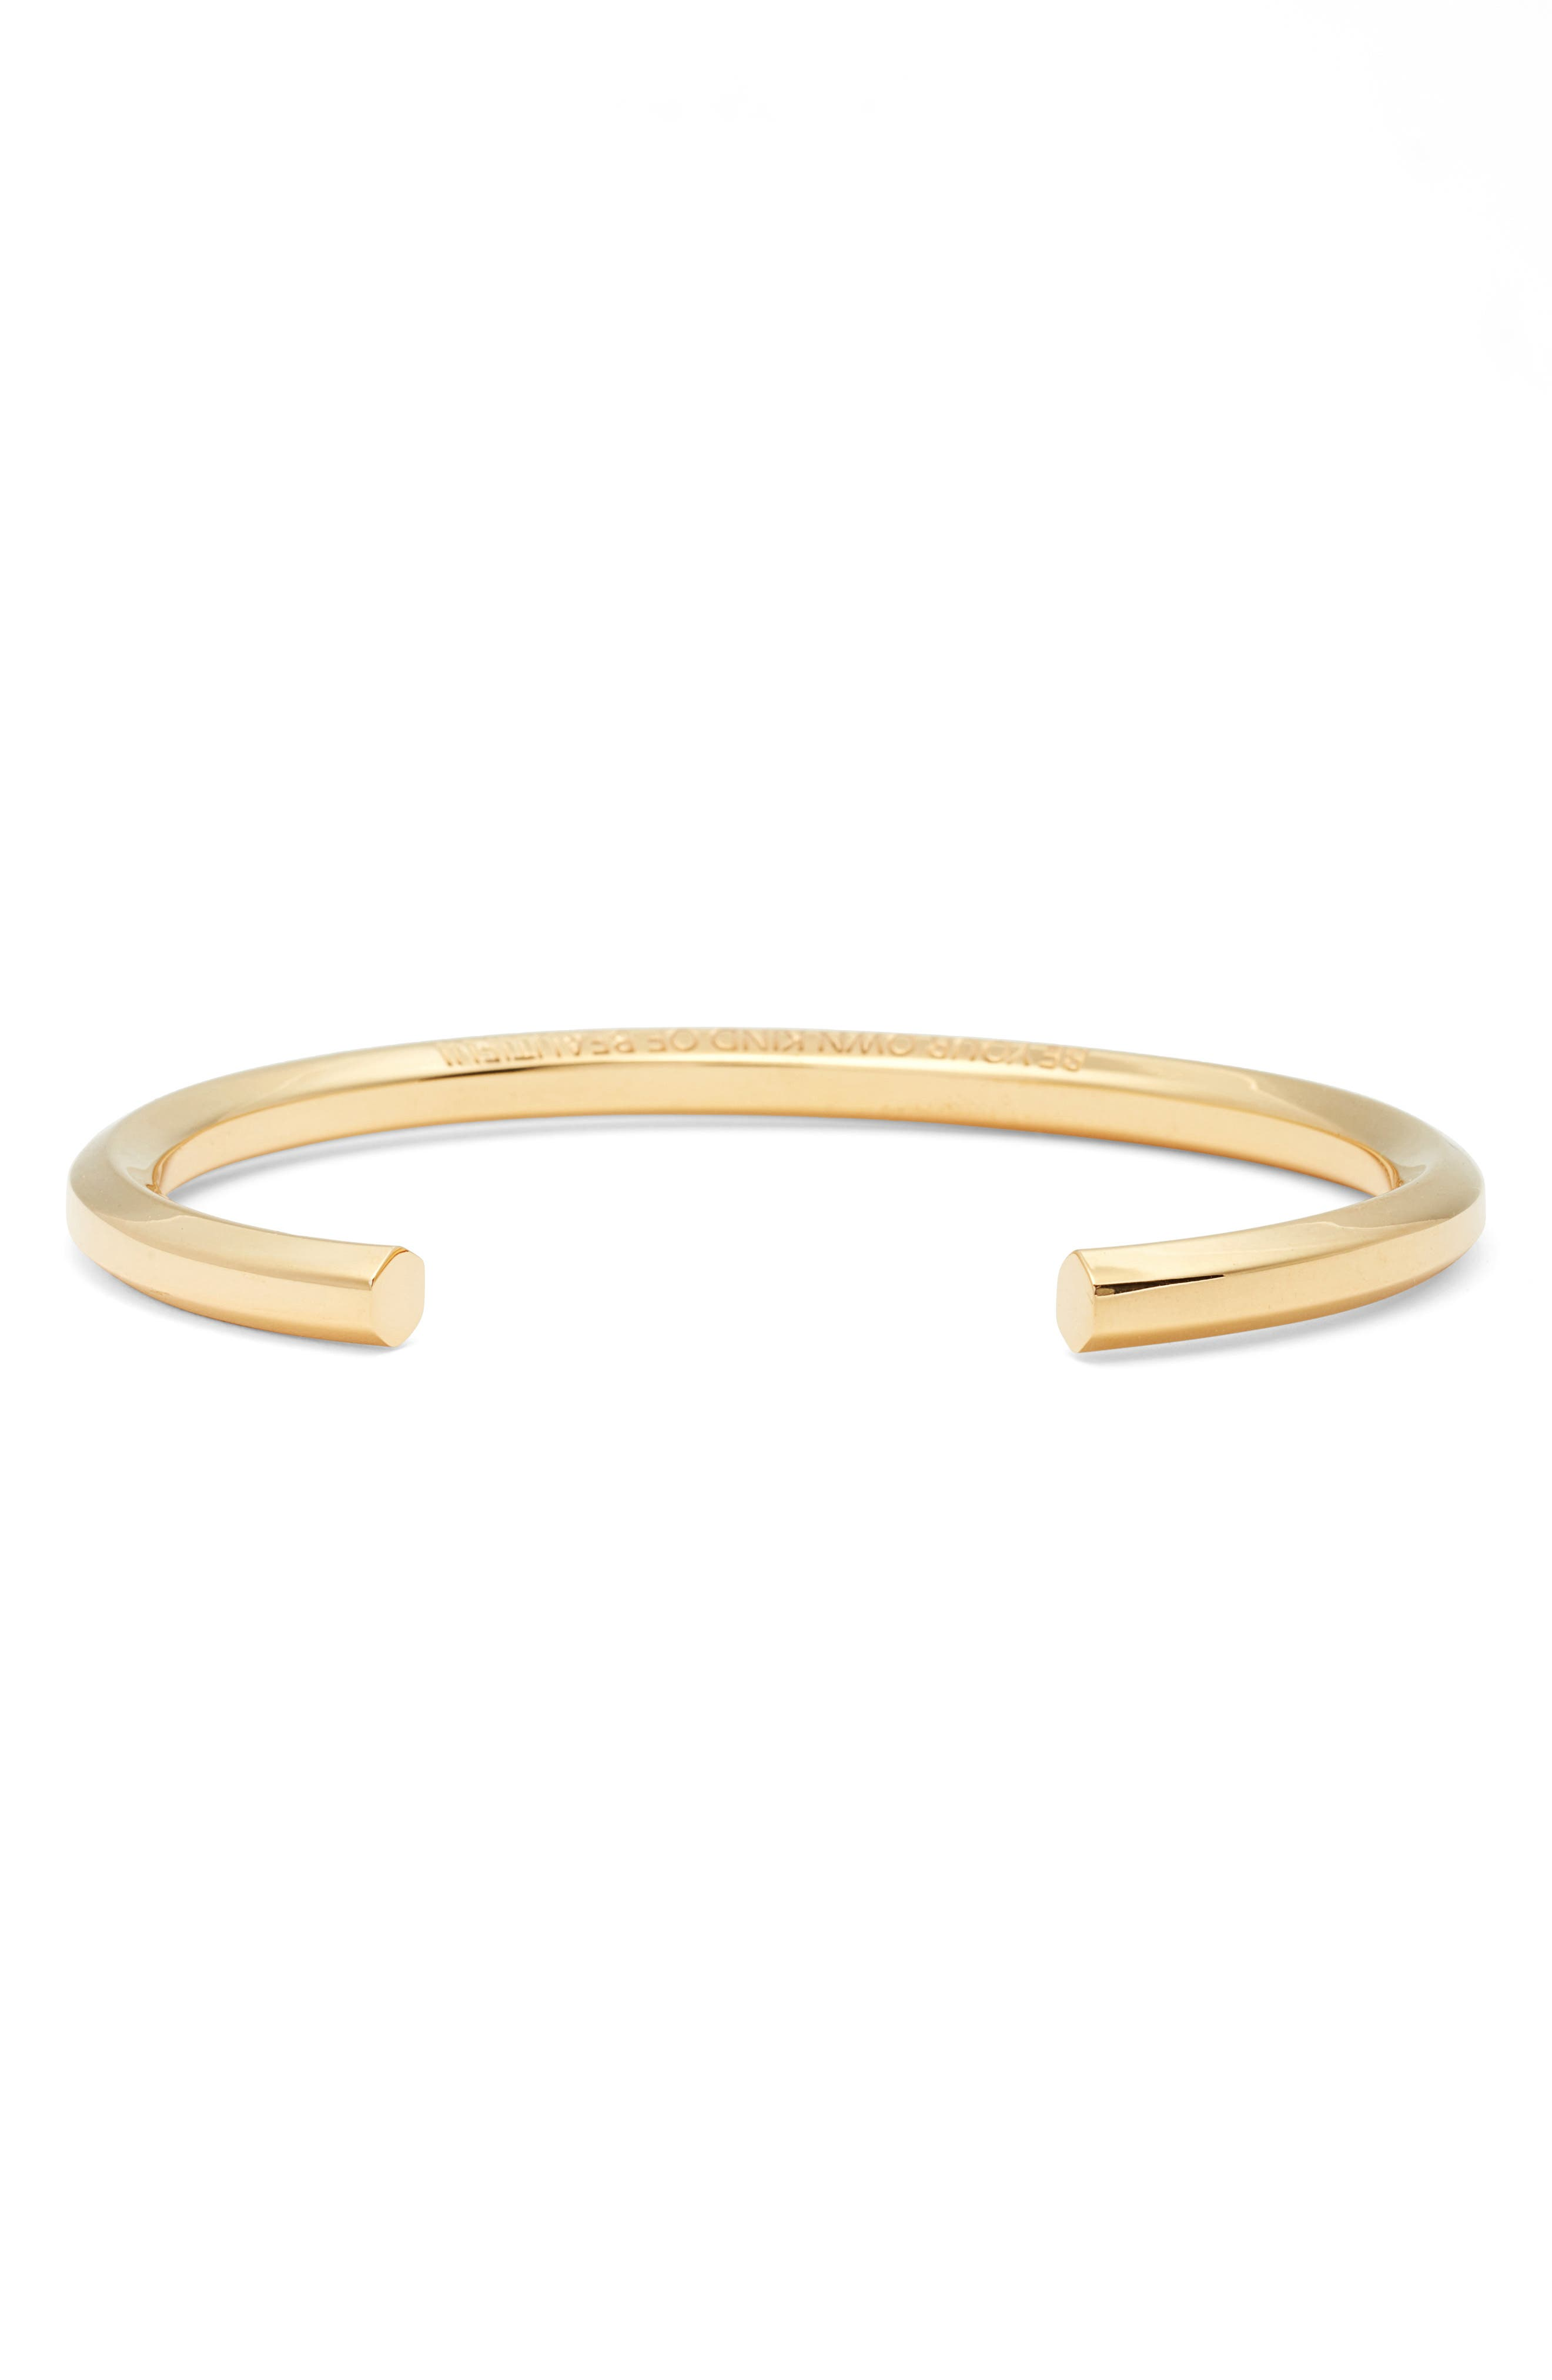 Be Your Own Kind of Beautiful Cuff,                             Alternate thumbnail 3, color,                             Gold